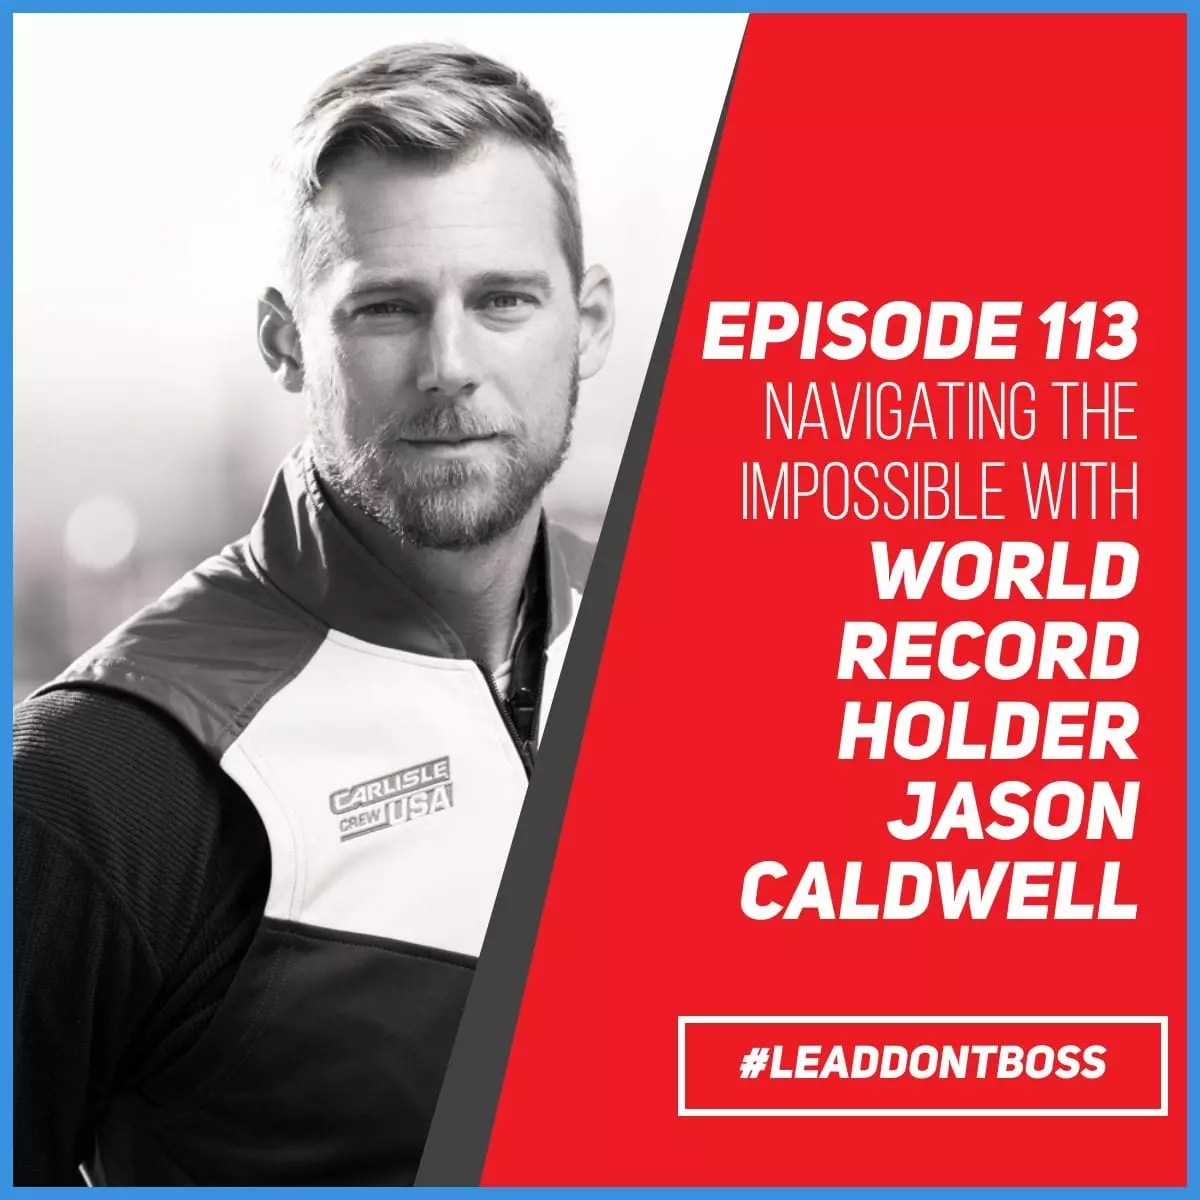 Navigating the Impossible   Jason Caldwell   Episode 113